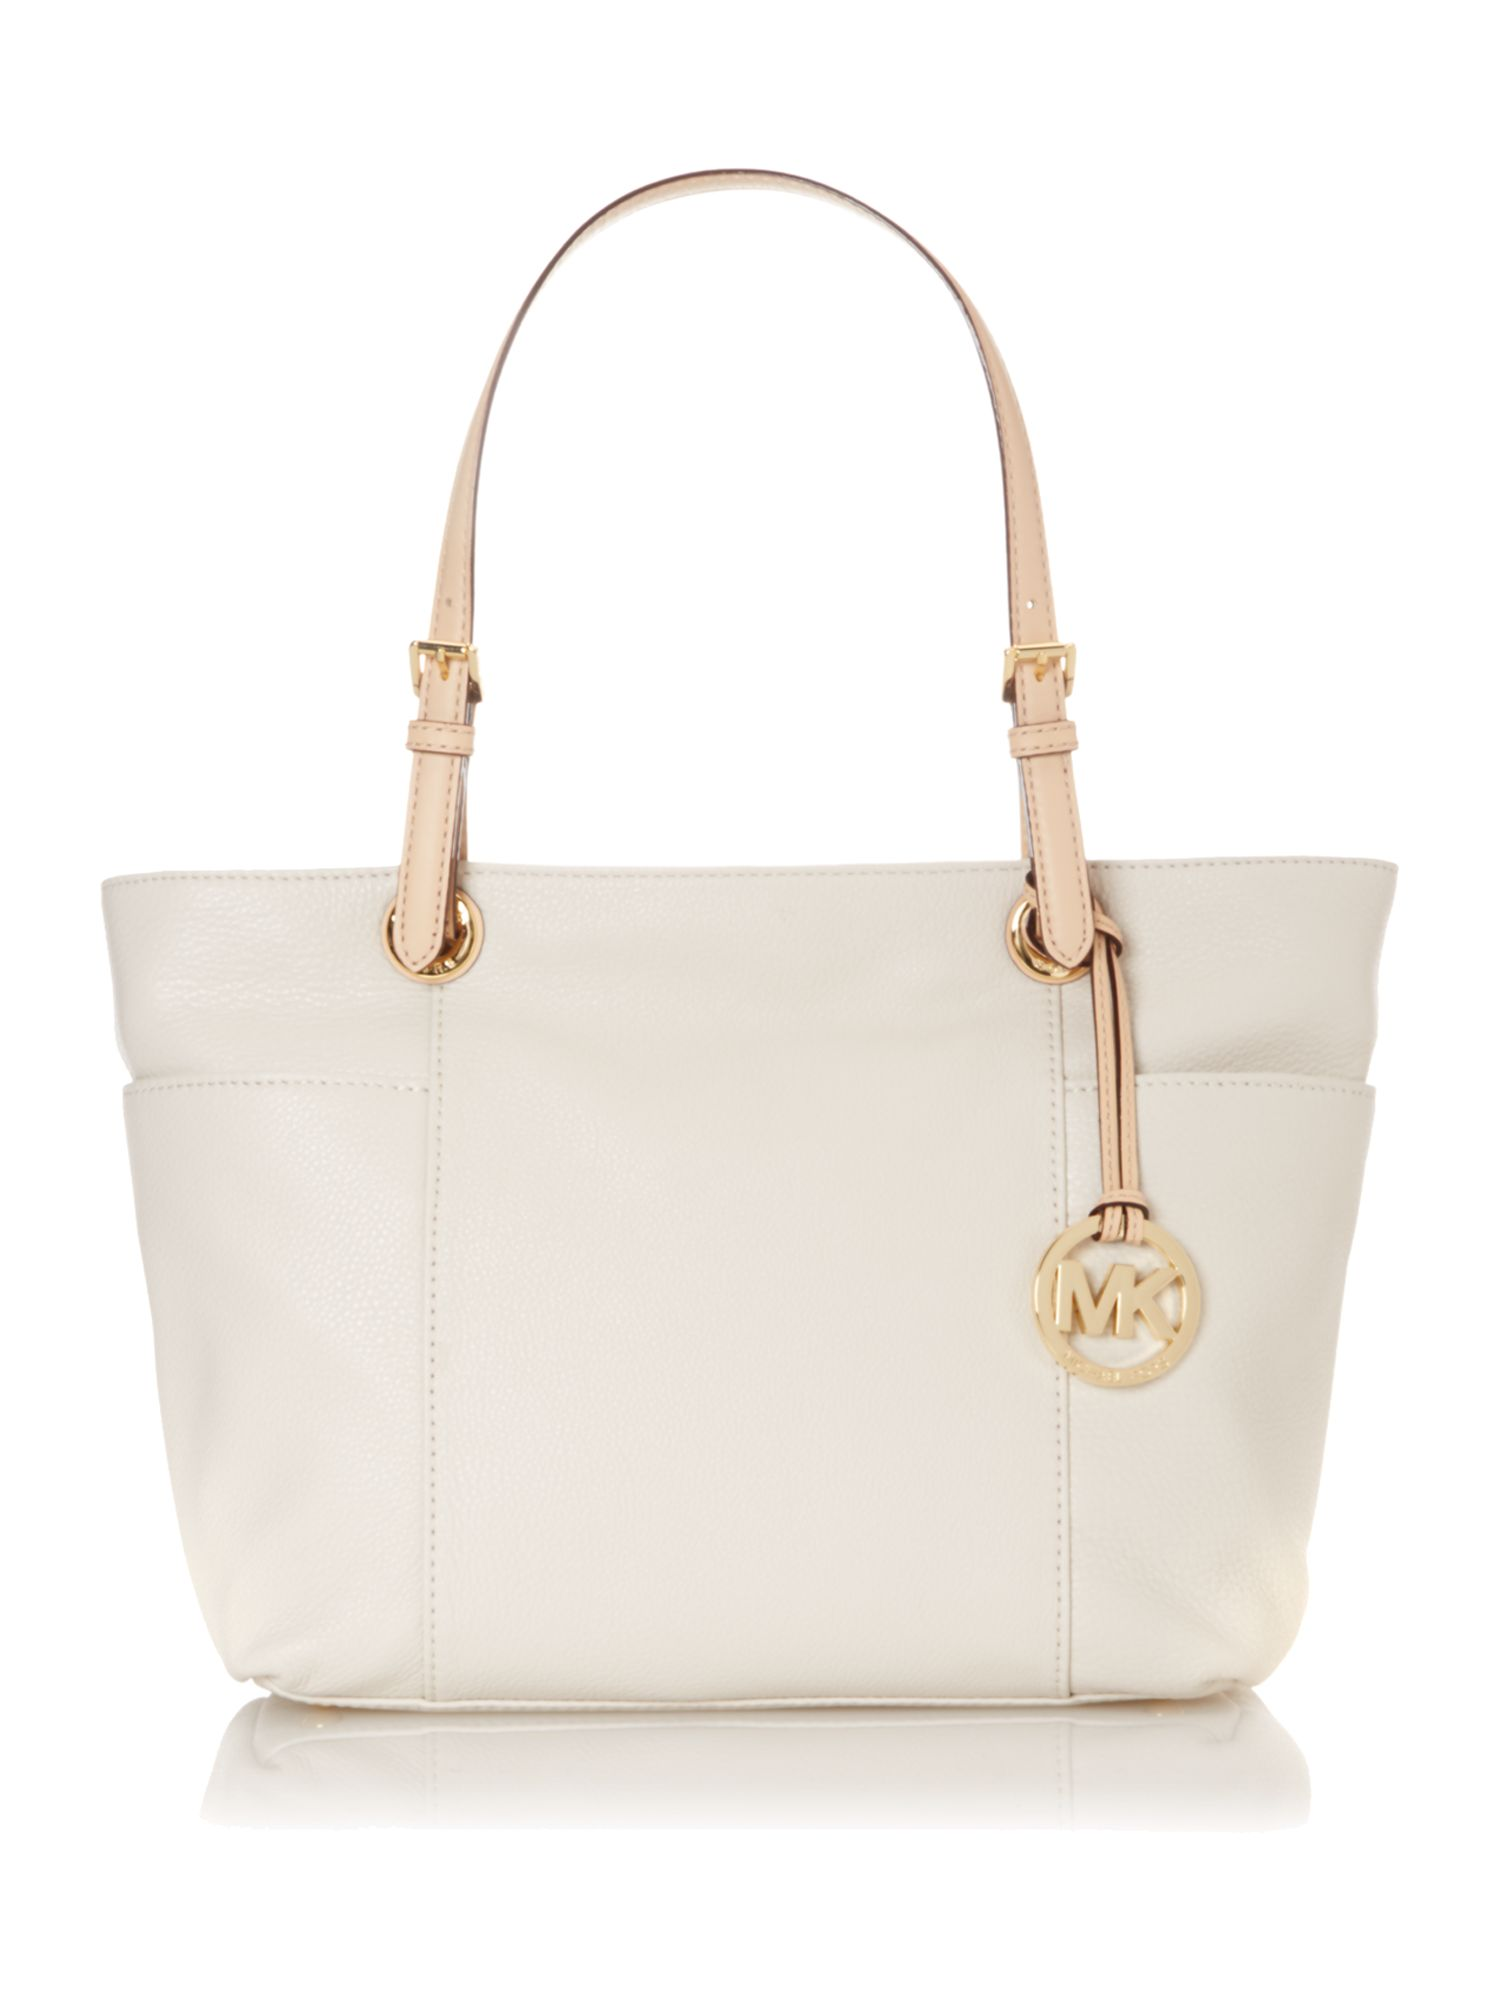 Michael Kors Outlet Store Online Special Offerred Of Authentic And Durable Michael Kors Handbags,Purses,With Huge Discount Price! Collection For discount Luxury Designer KORS Michael Kors handbags,bags,purses,wallets 80% thinking-sometimes.ml Fast Shipping And No Tax!